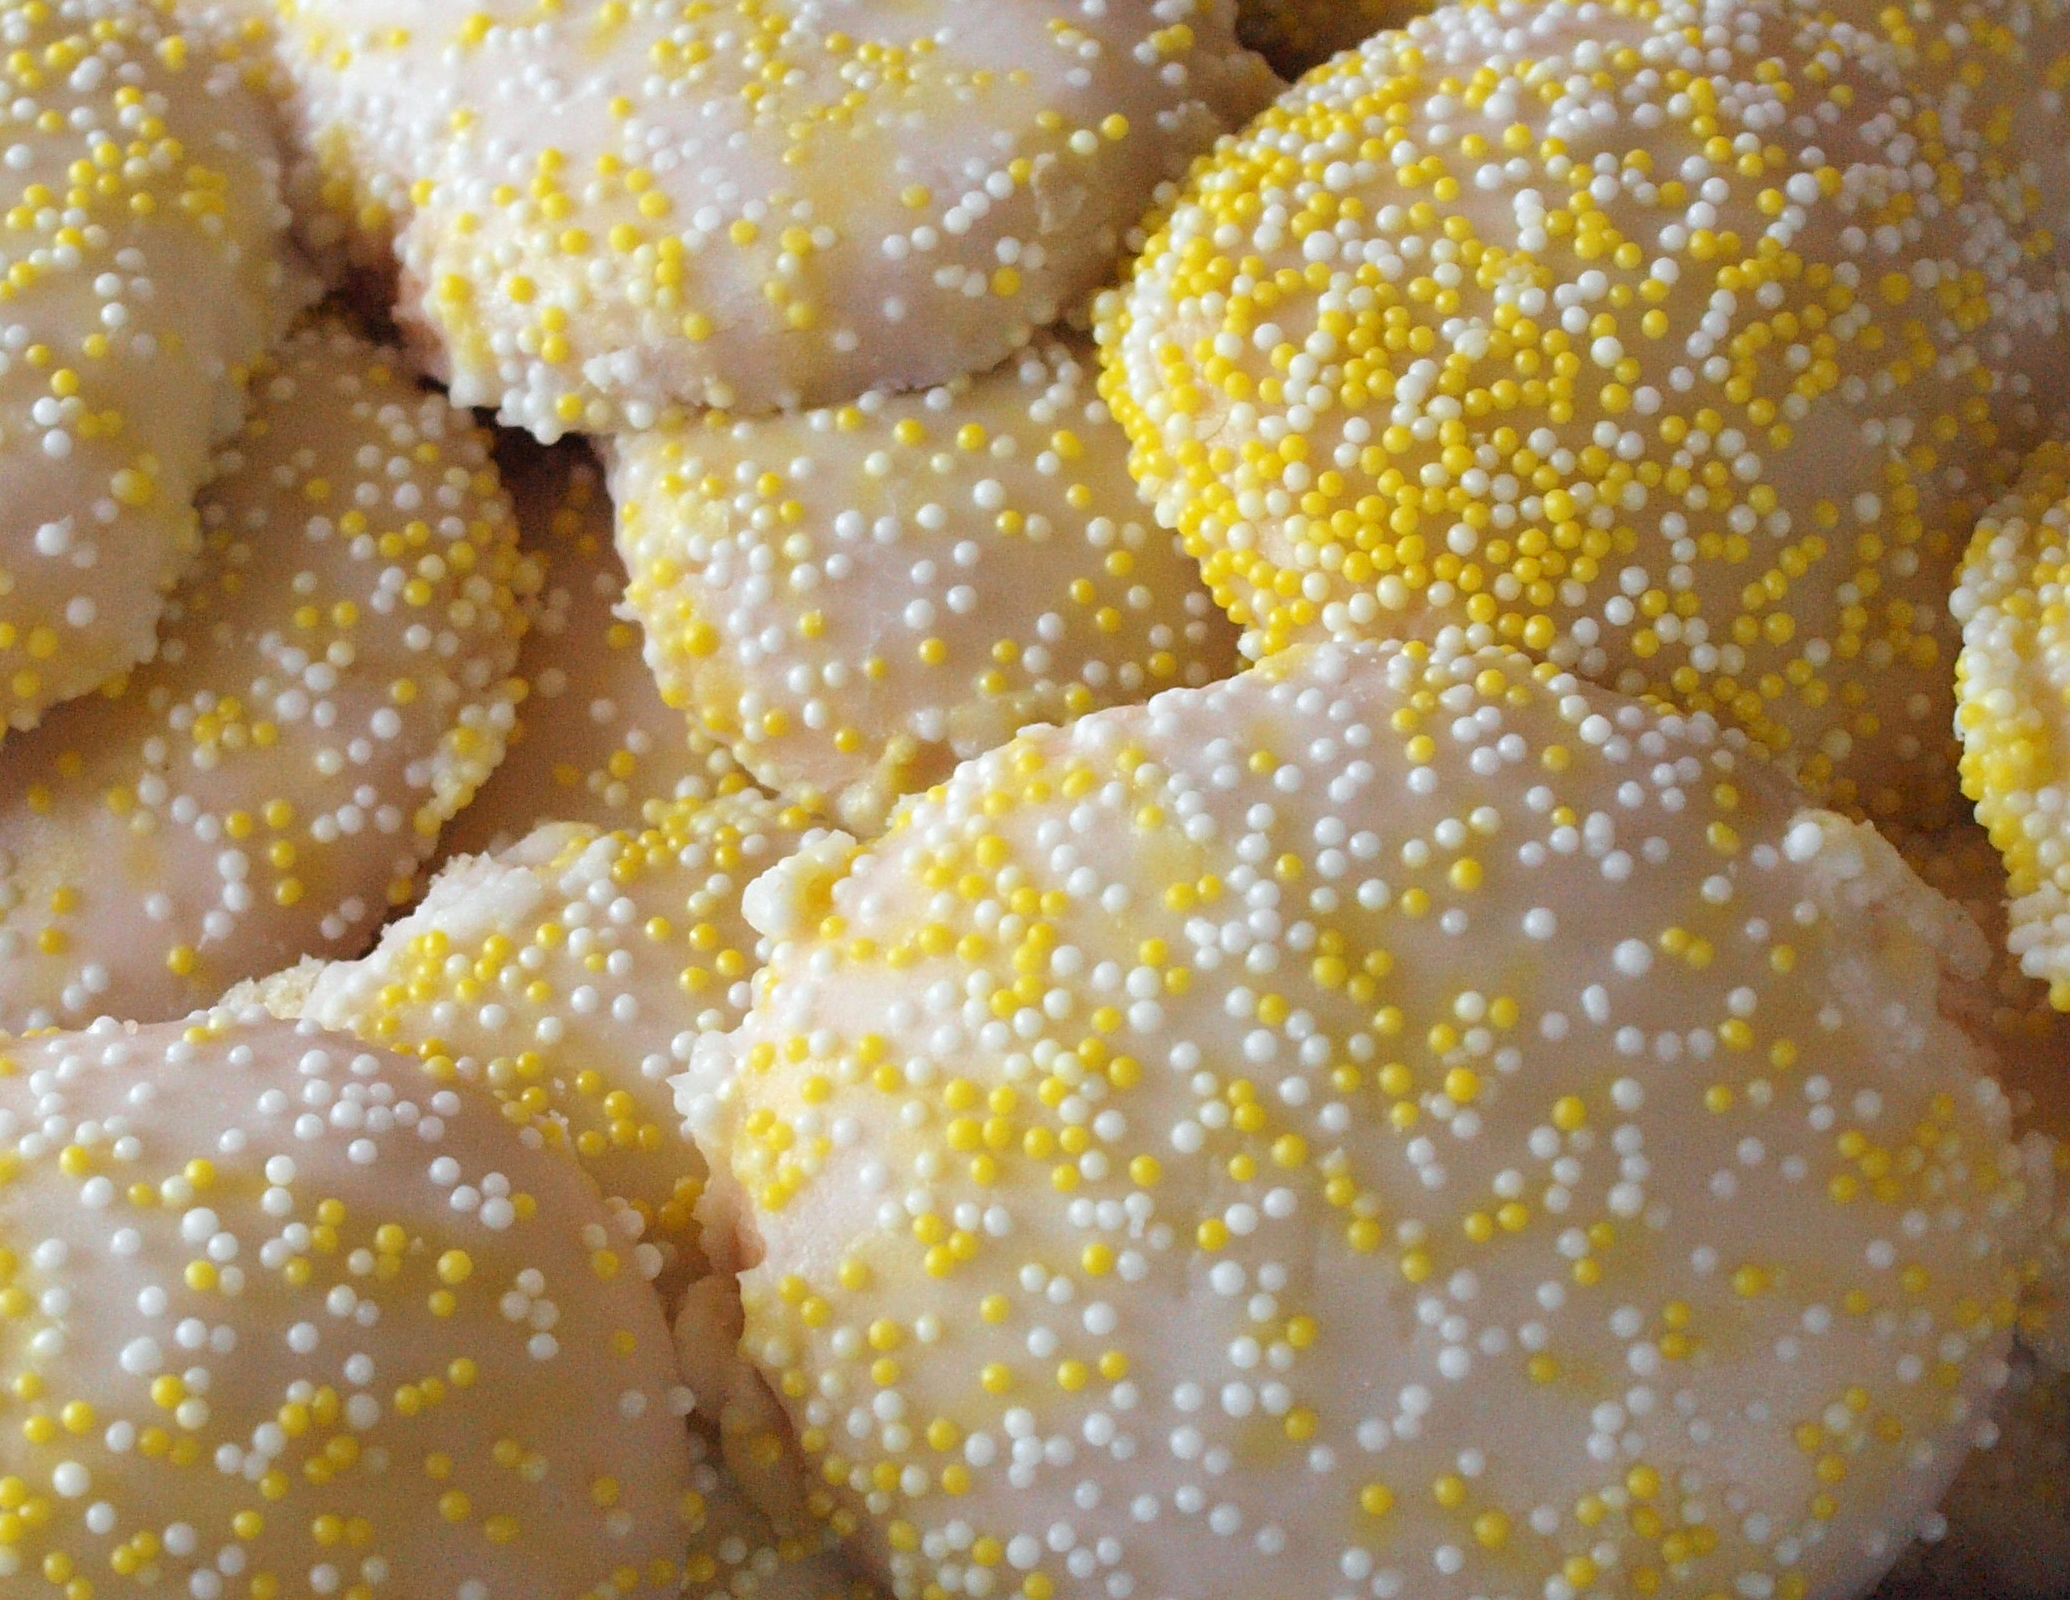 Toni's Own Lemon Burst Cookies